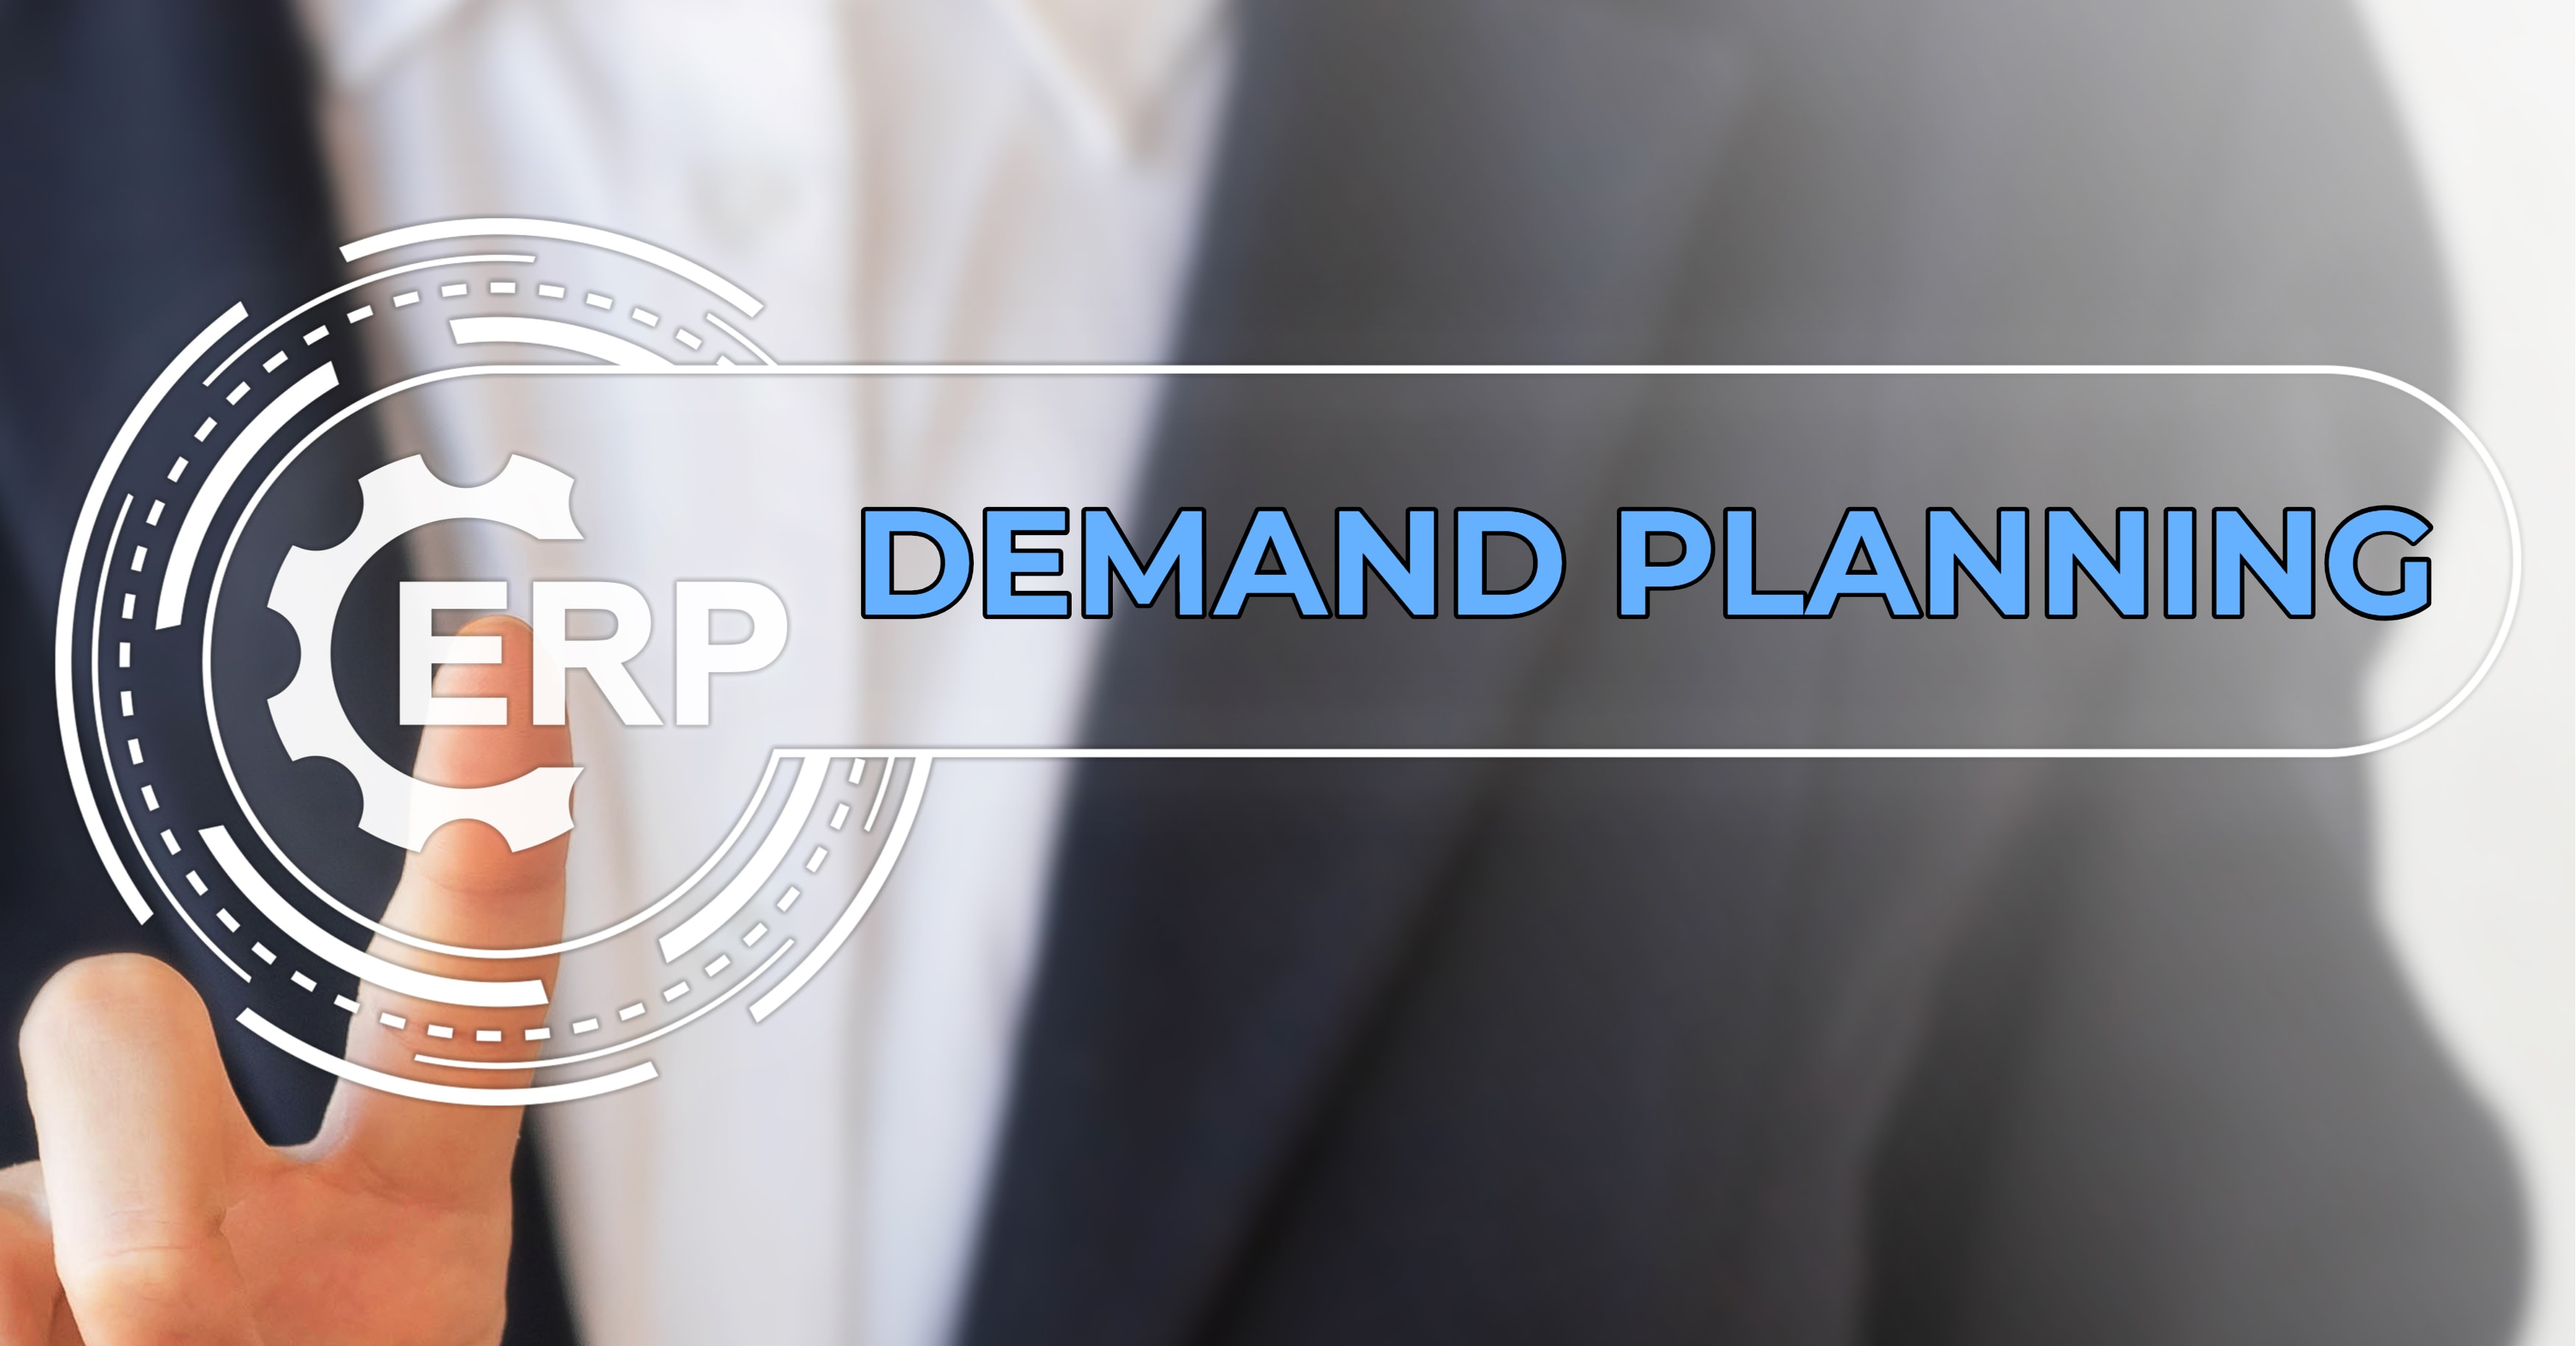 Are You Using Your Demand Planning Tools Effectively?